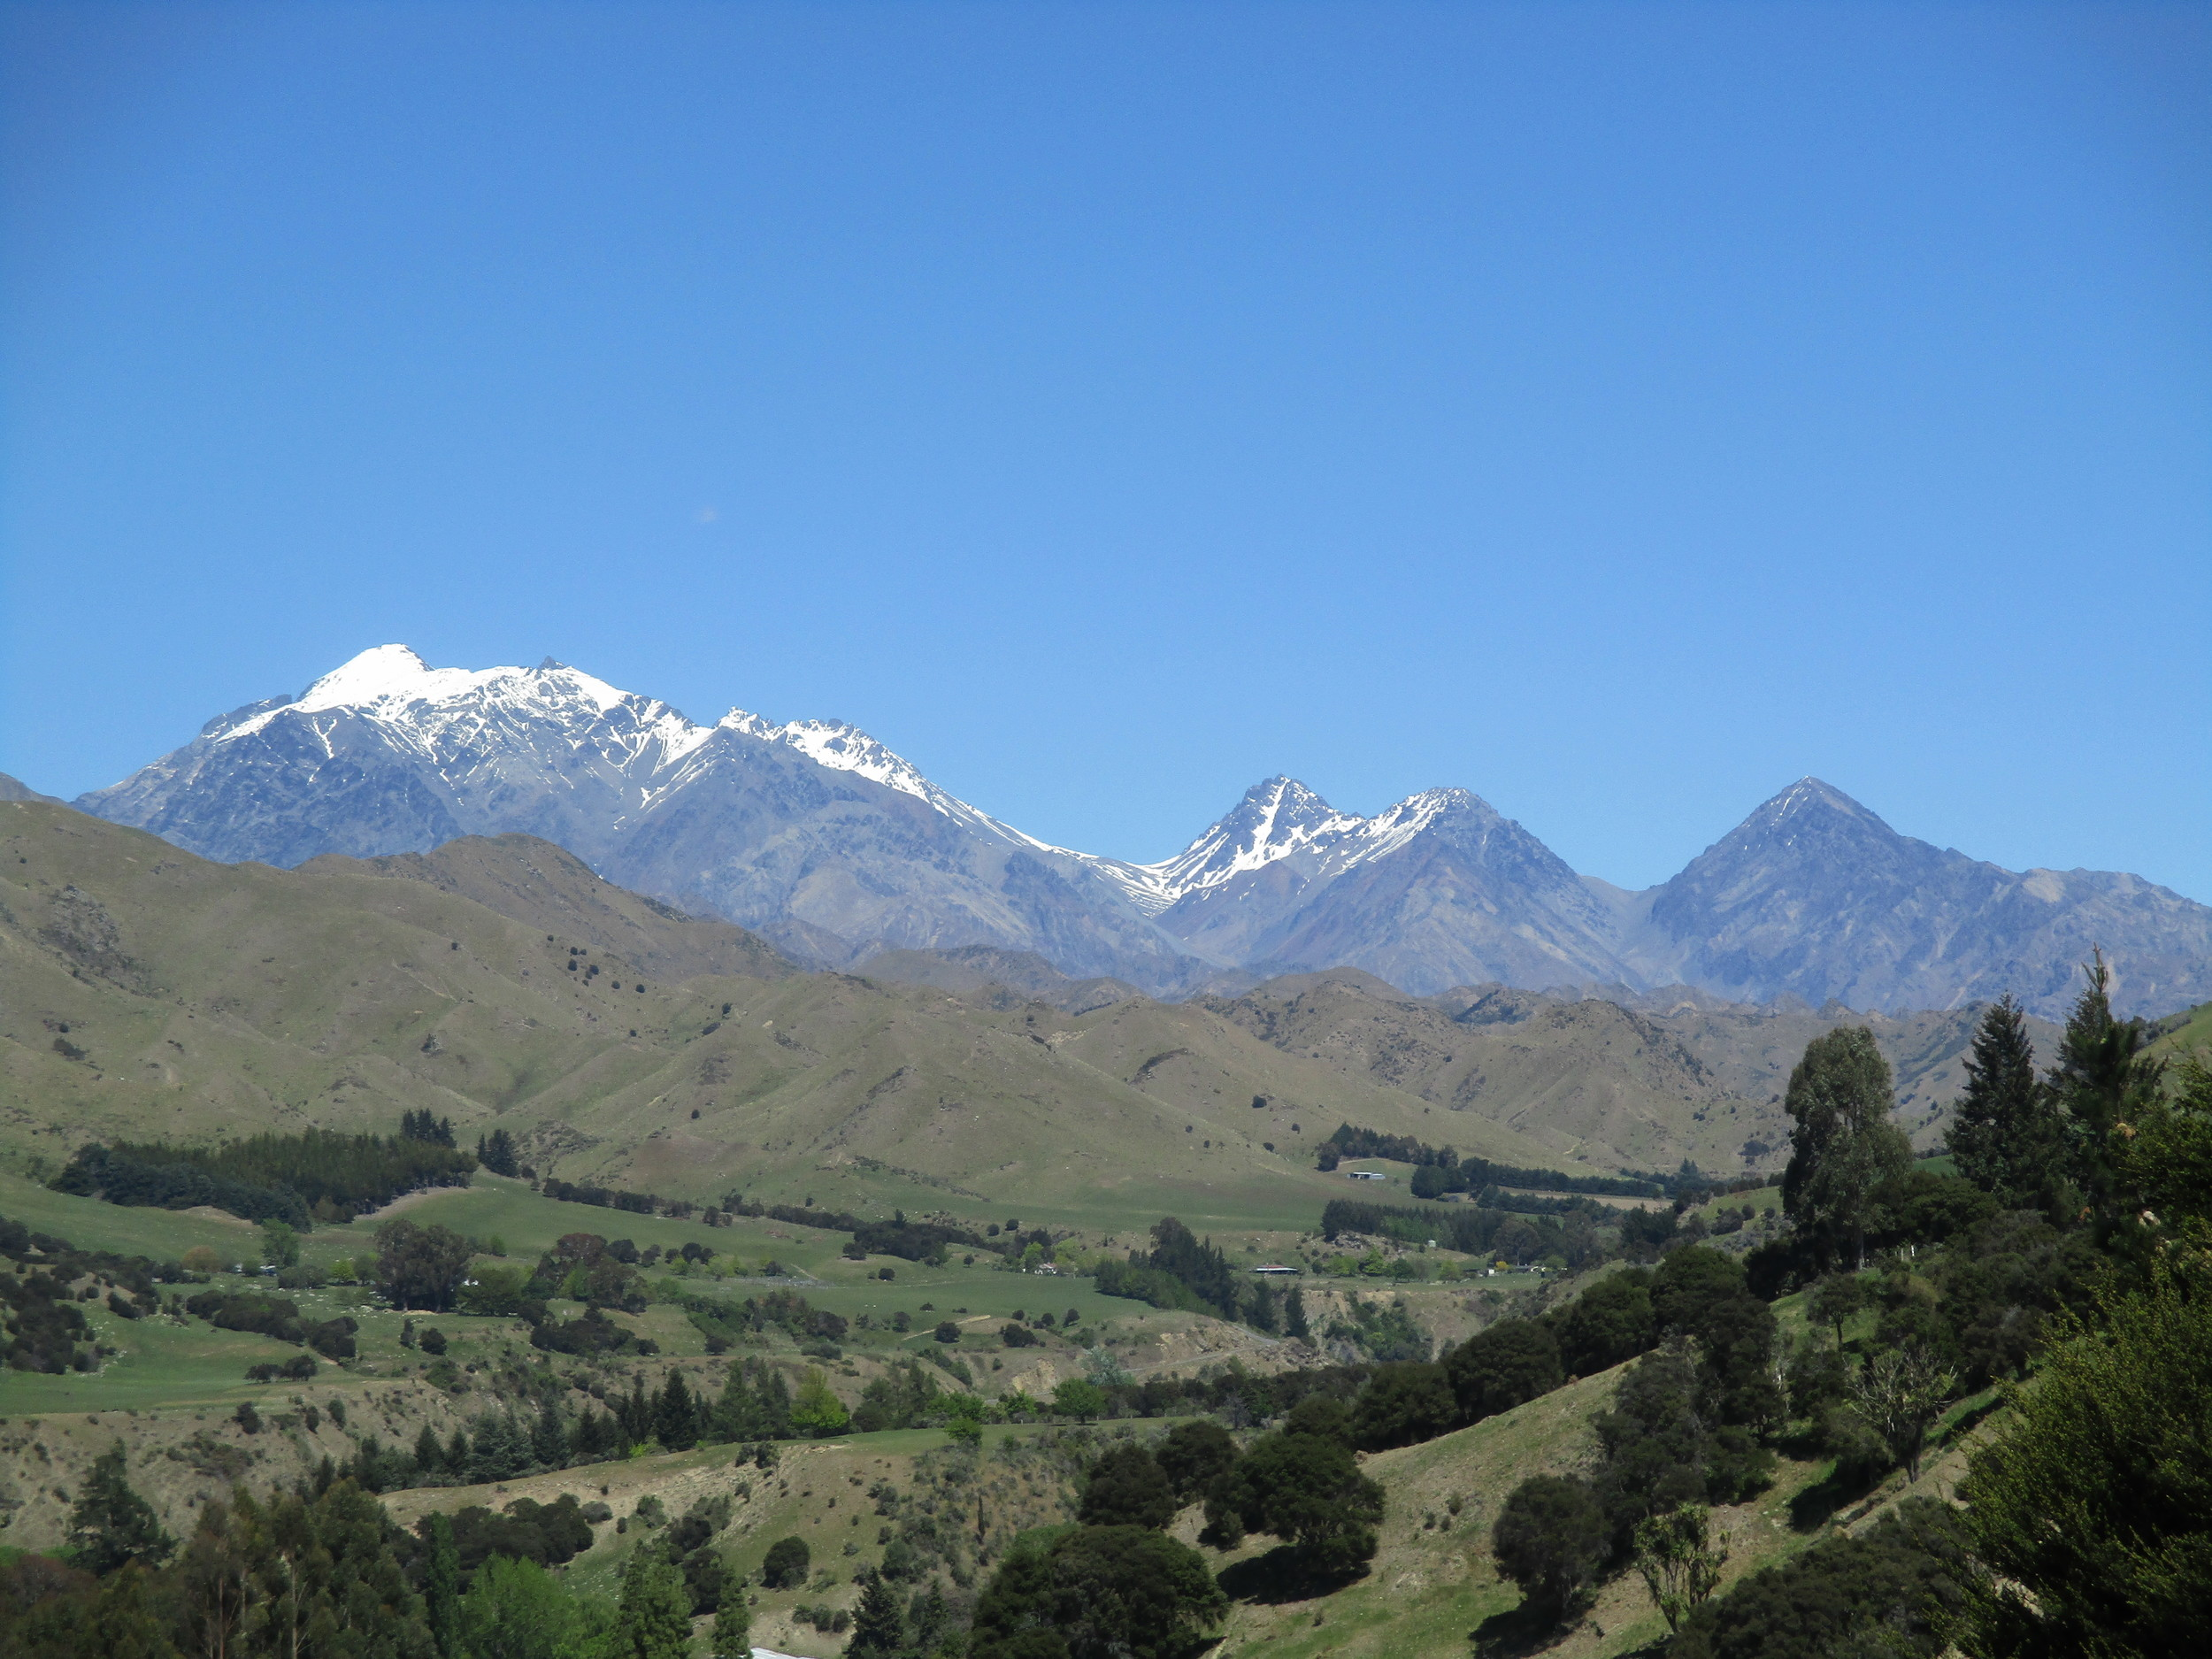 Approaching Tapuae-o-Uenuku via the Awatere valley